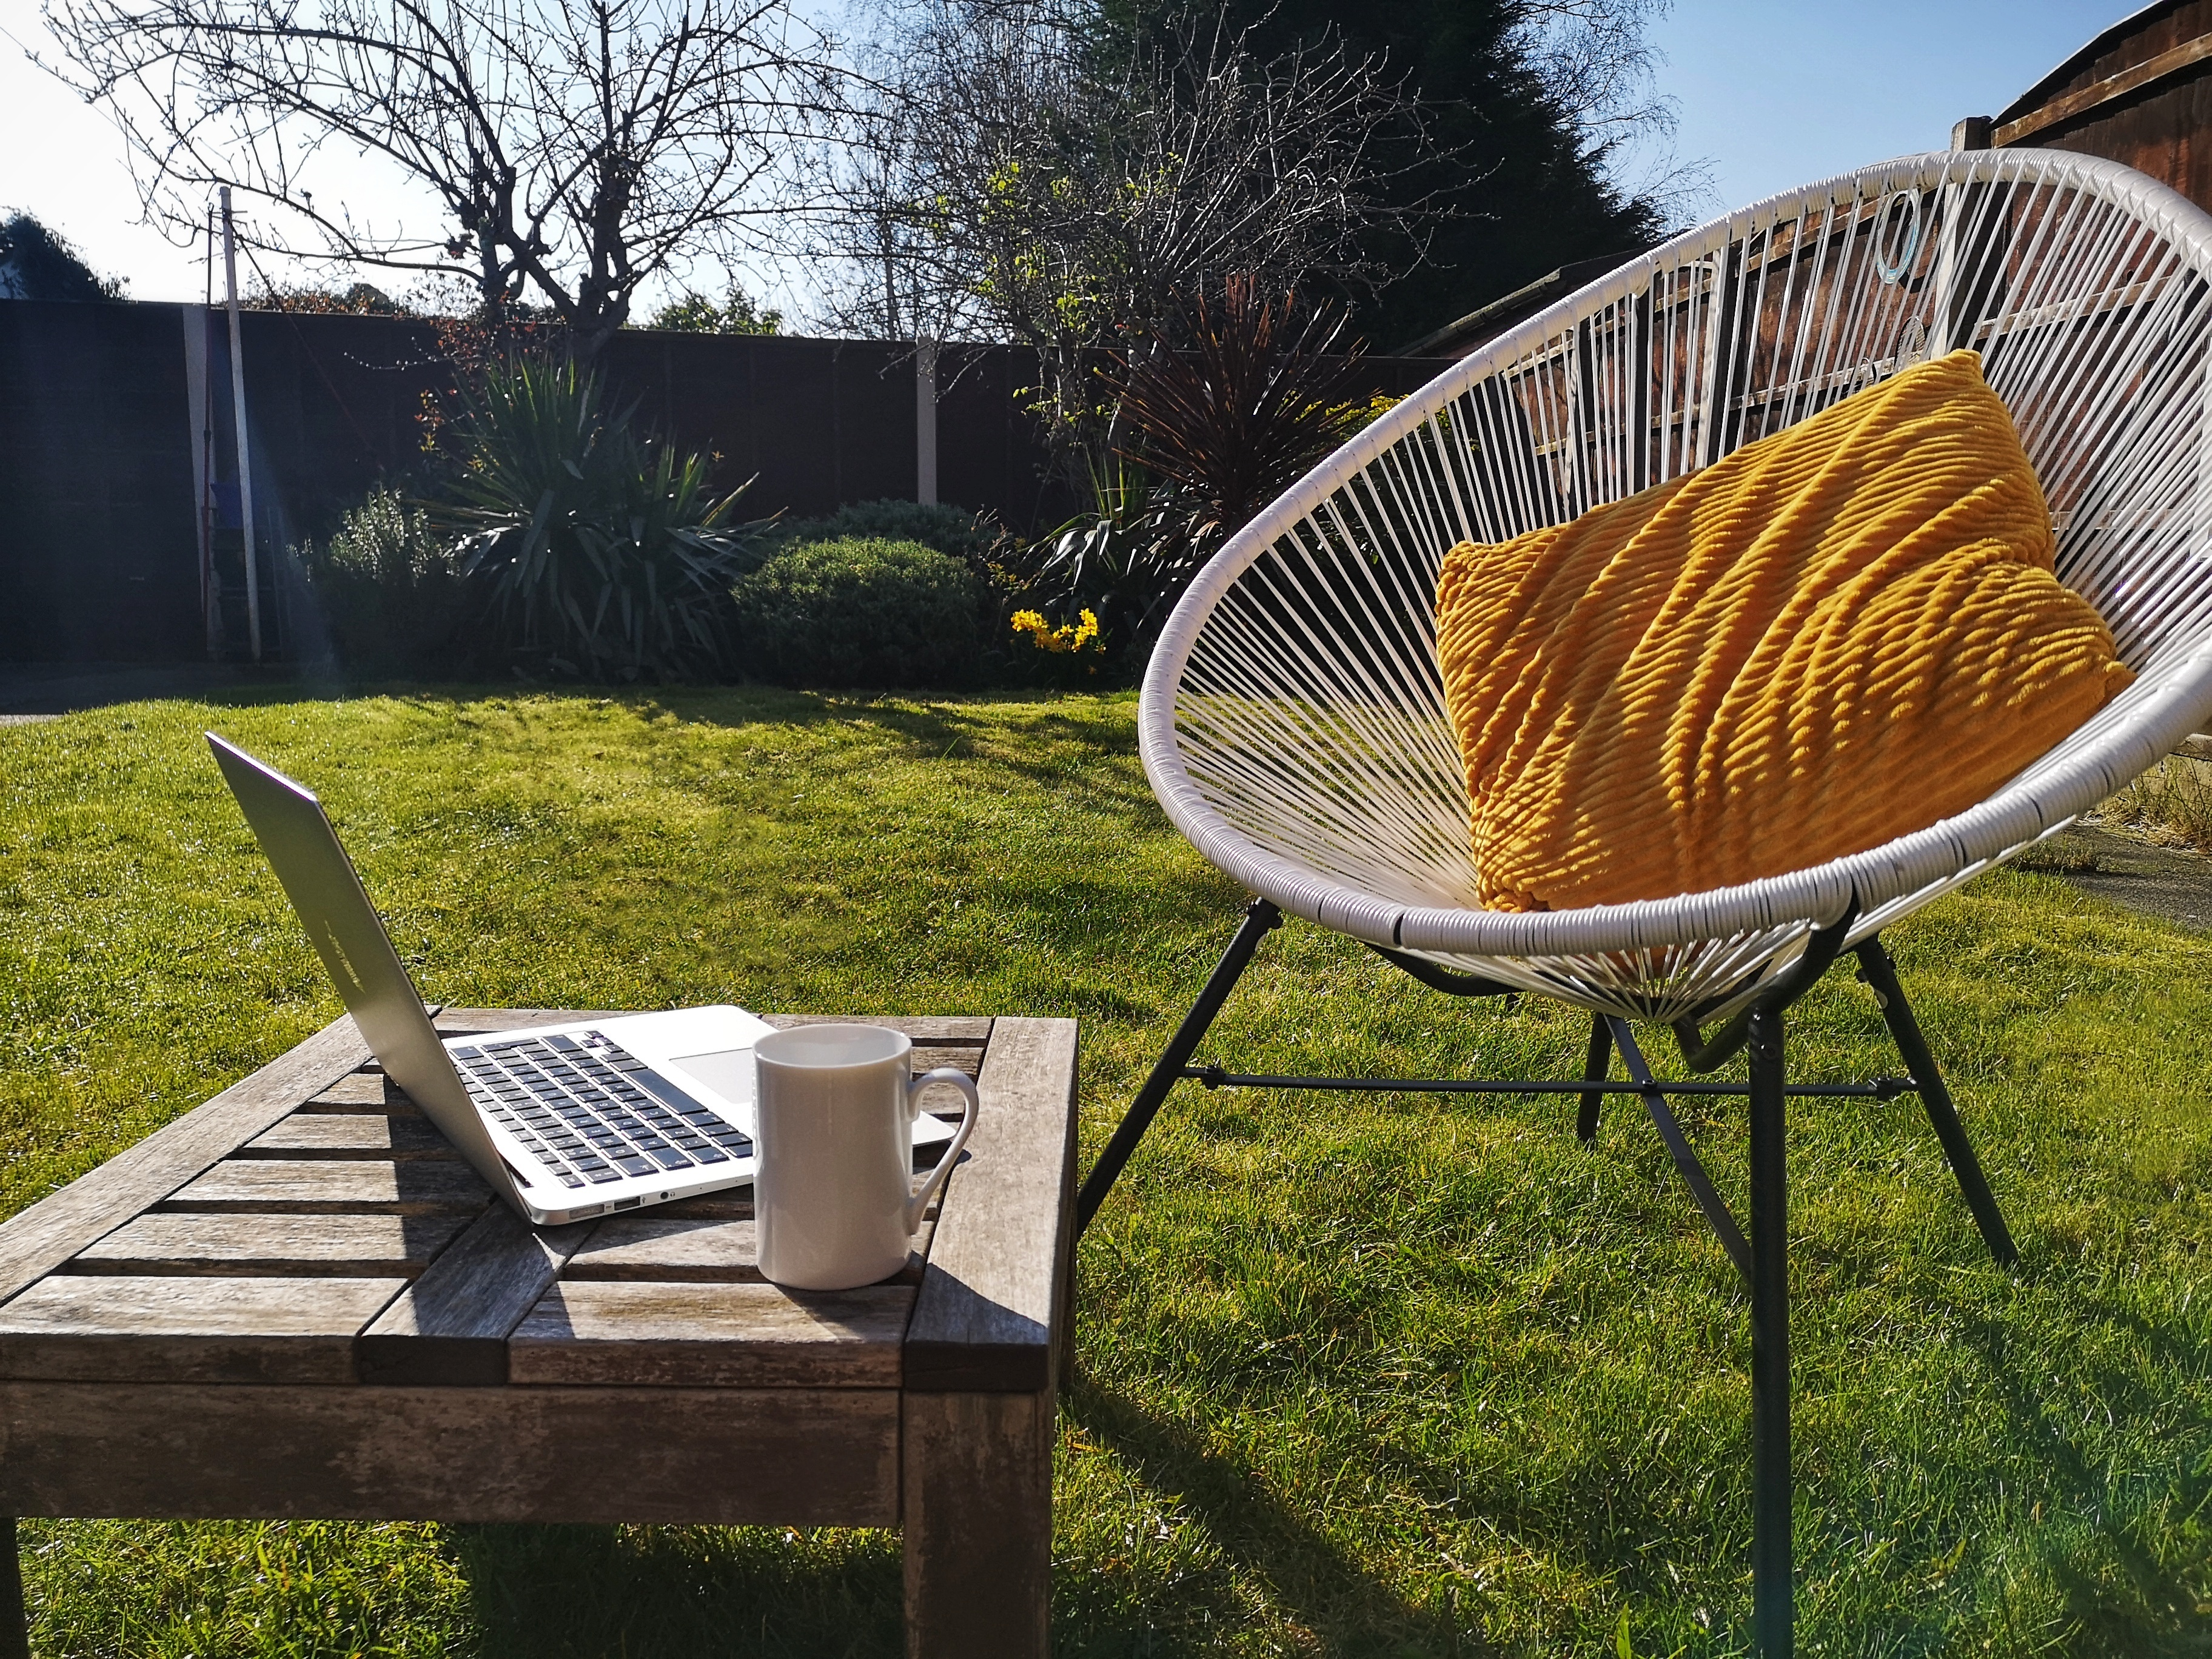 Working from home - Small home office set up in a sunny garden, laptop and coffee cup on the table beside a white chair with a yellow cushion.